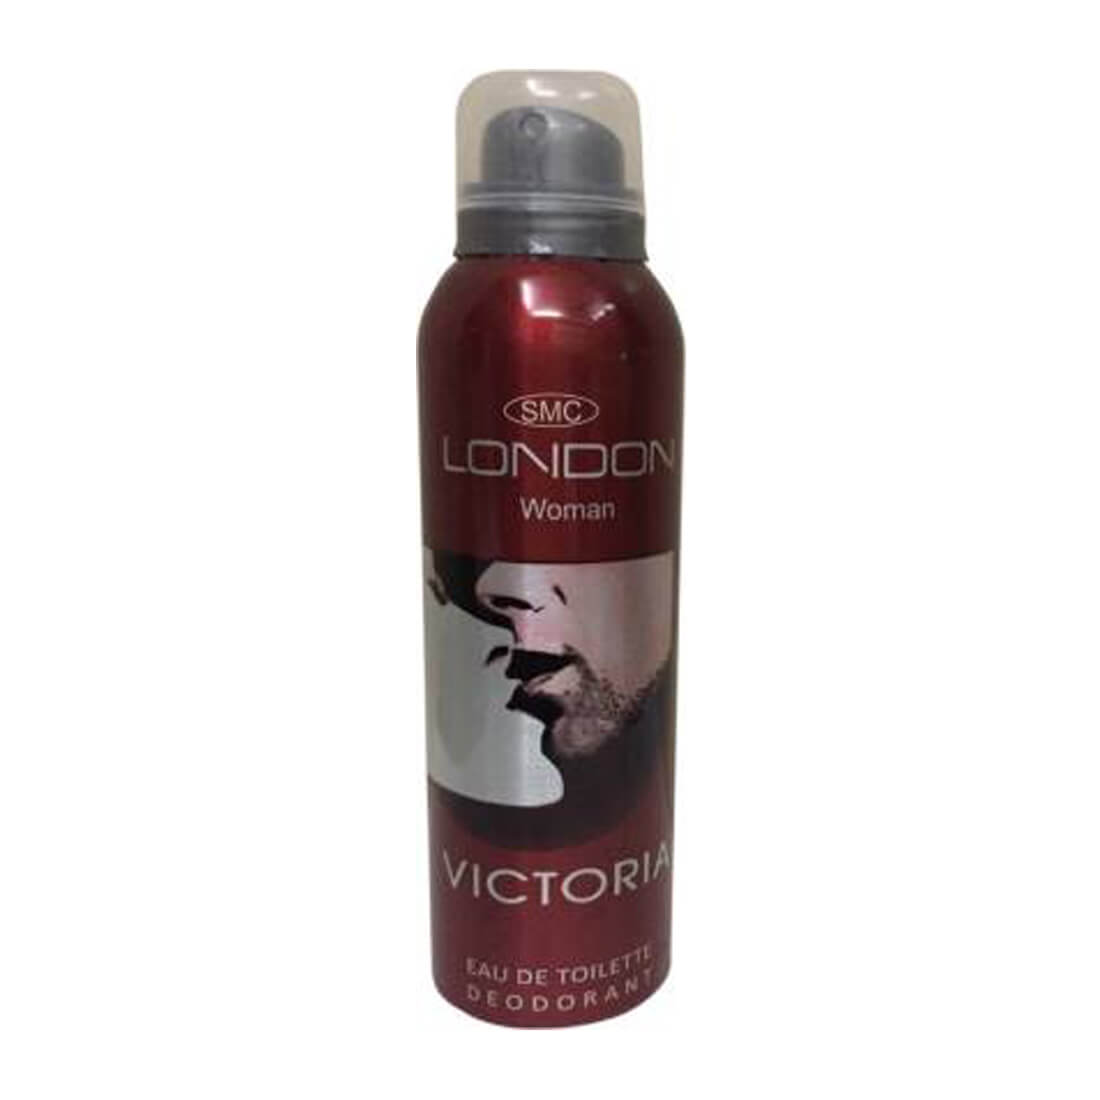 London Victoria Deodorant Body Spray 200ml